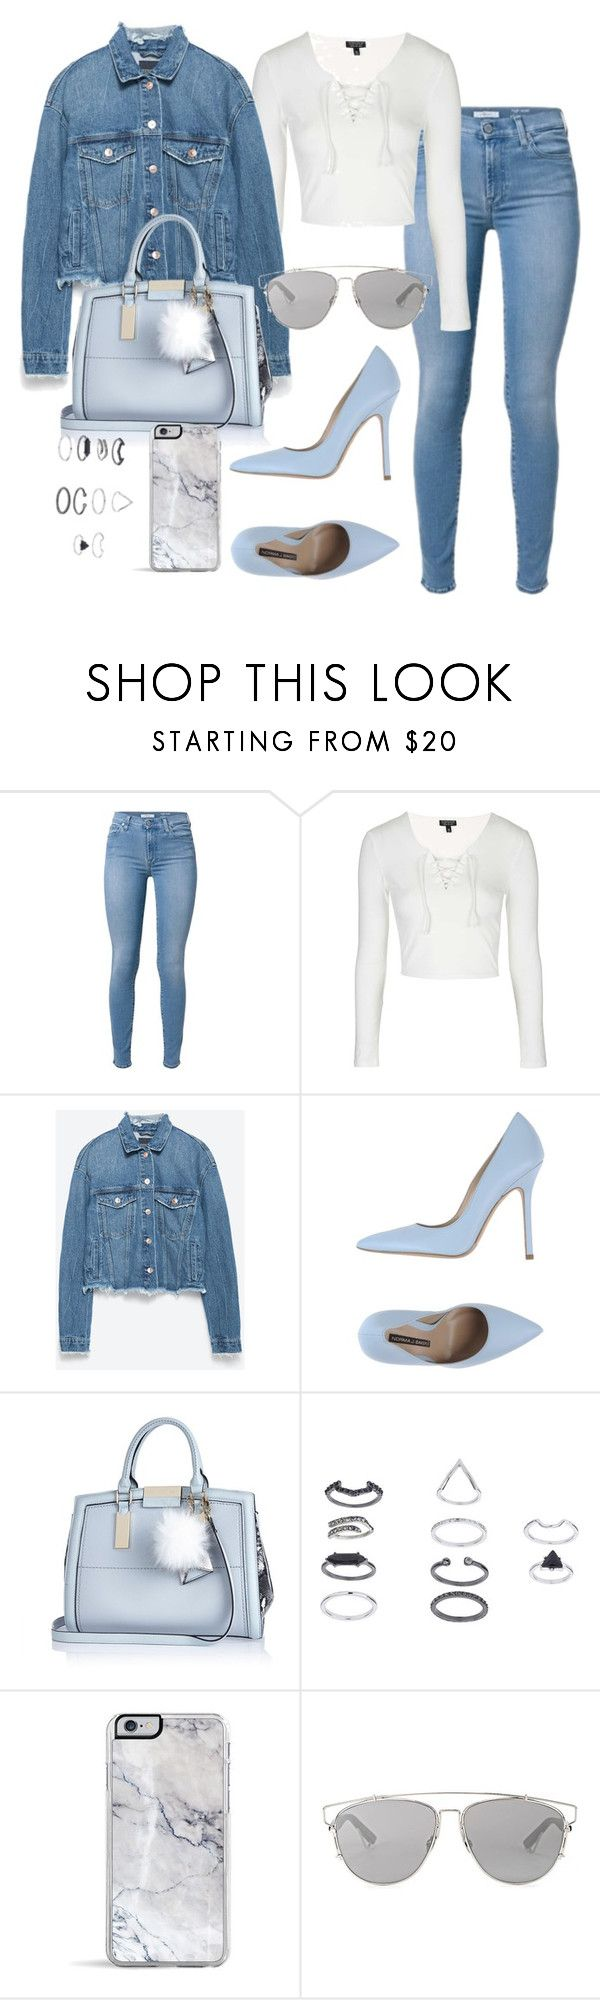 """Untitled #3729"" by lilaclynn ❤ liked on Polyvore featuring Topshop, Zara, Norma J.Baker, River Island, Christian Dior, Dior, topshop, zara and RiverIsland"